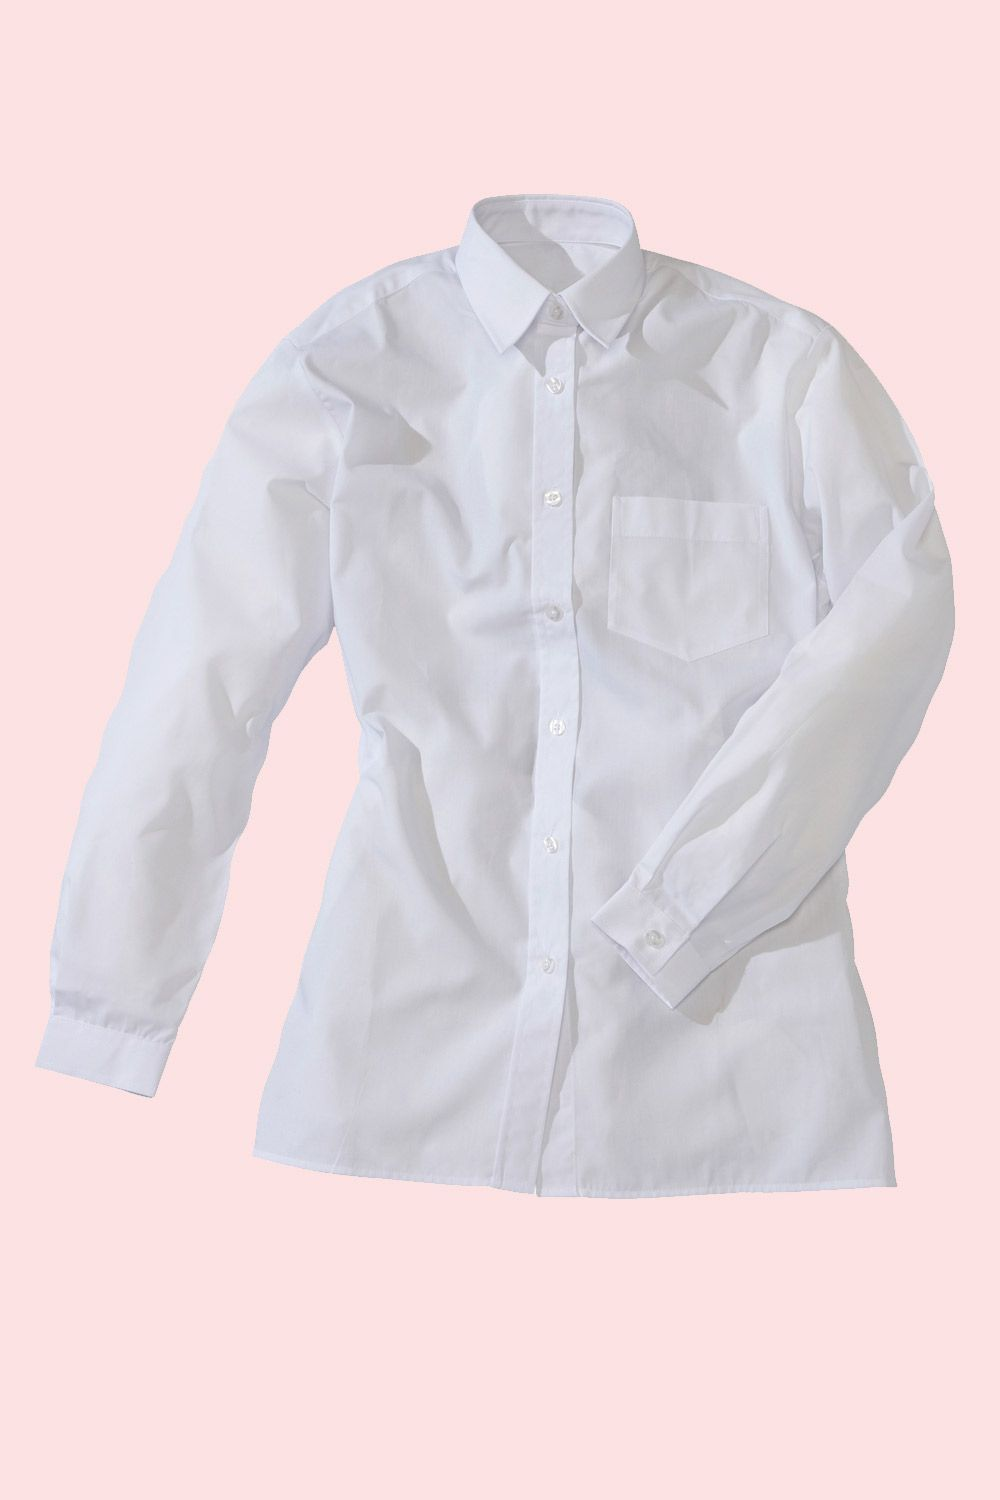 "<p>Not only do darker clothes attract the sun's rays in the summer, but the CDC <a href=""http://www.cdc.gov/zika/prevention/"" target=""_blank"">also recommends</a> wearing lighter clothes in mosquito-riddled areas and staying covered up to prevent unwanted bites. They also suggest not spraying mosquito spray underneath clothing. </p>"